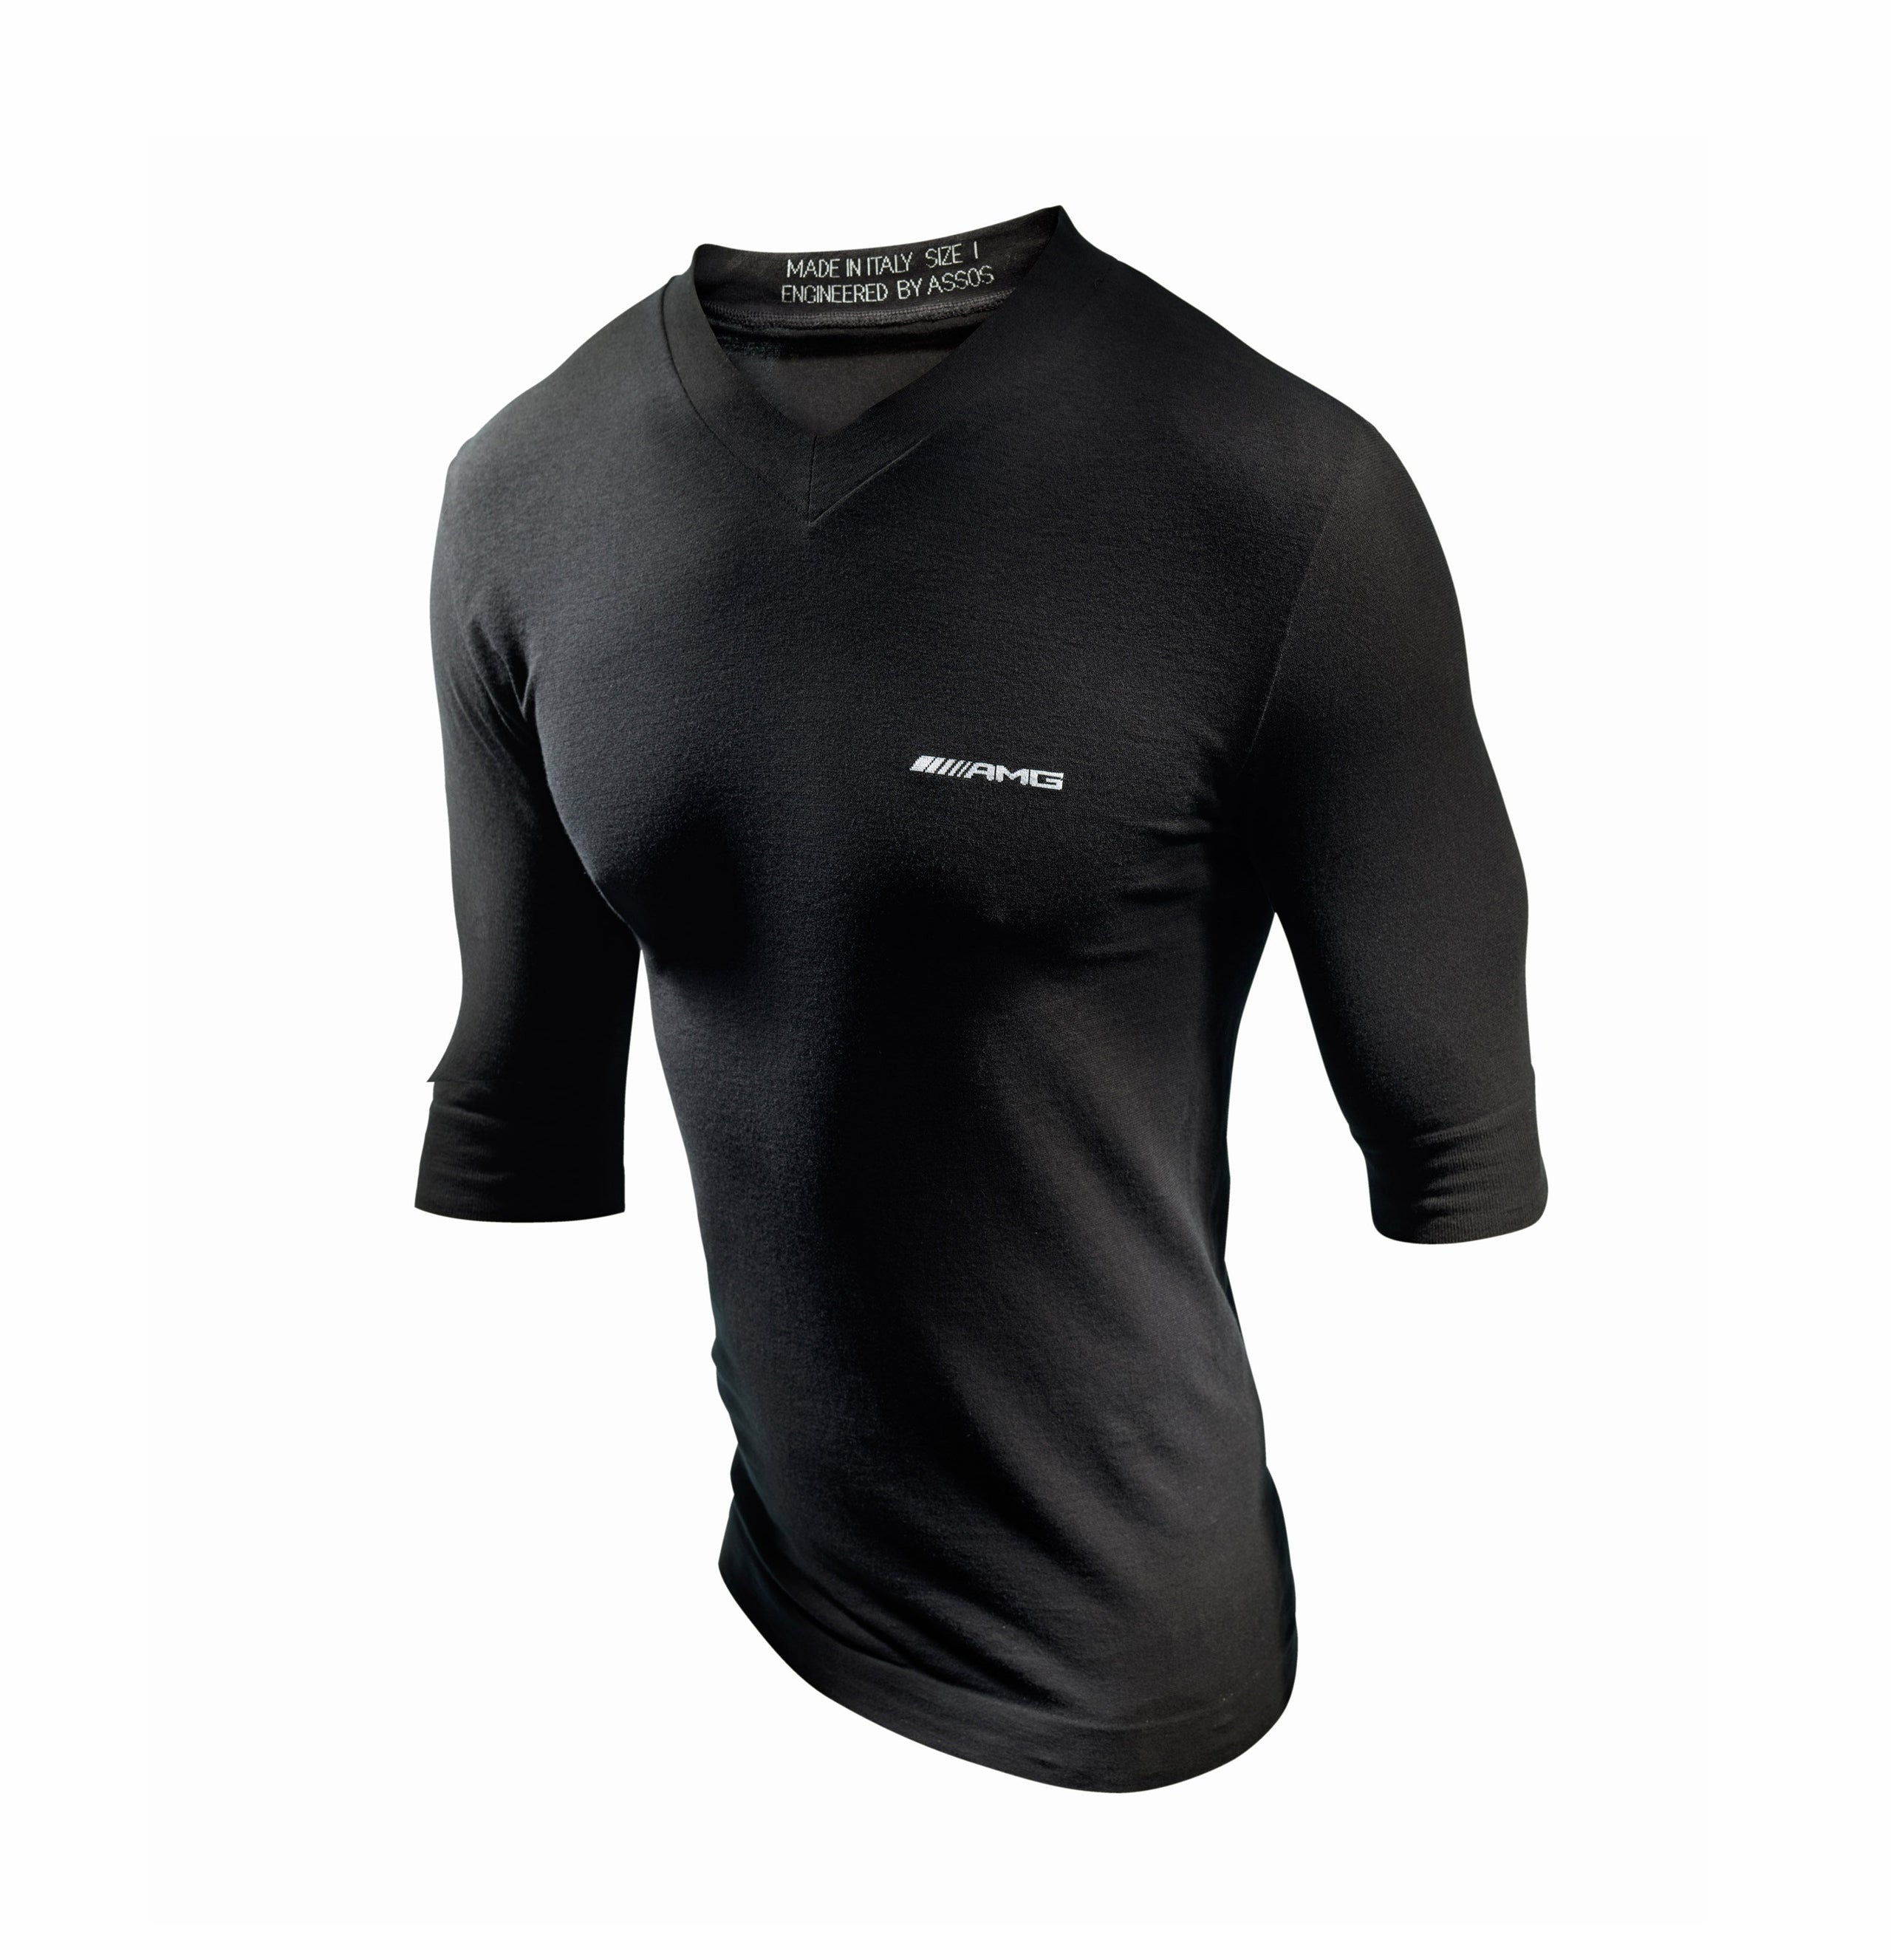 AMG BASELAYER SUMMER